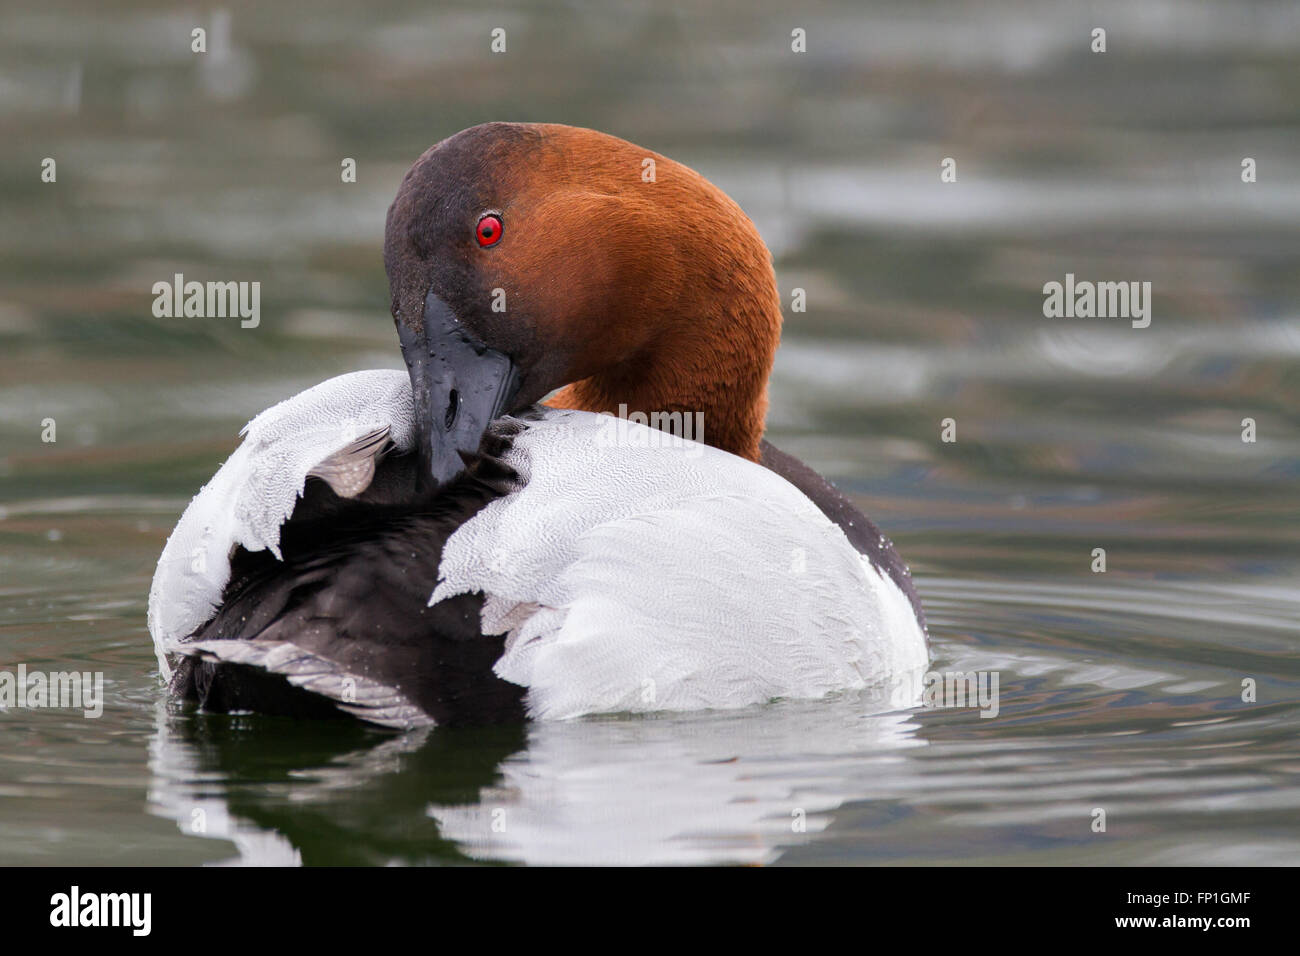 A canvas back duck cruising a pond. - Stock Image